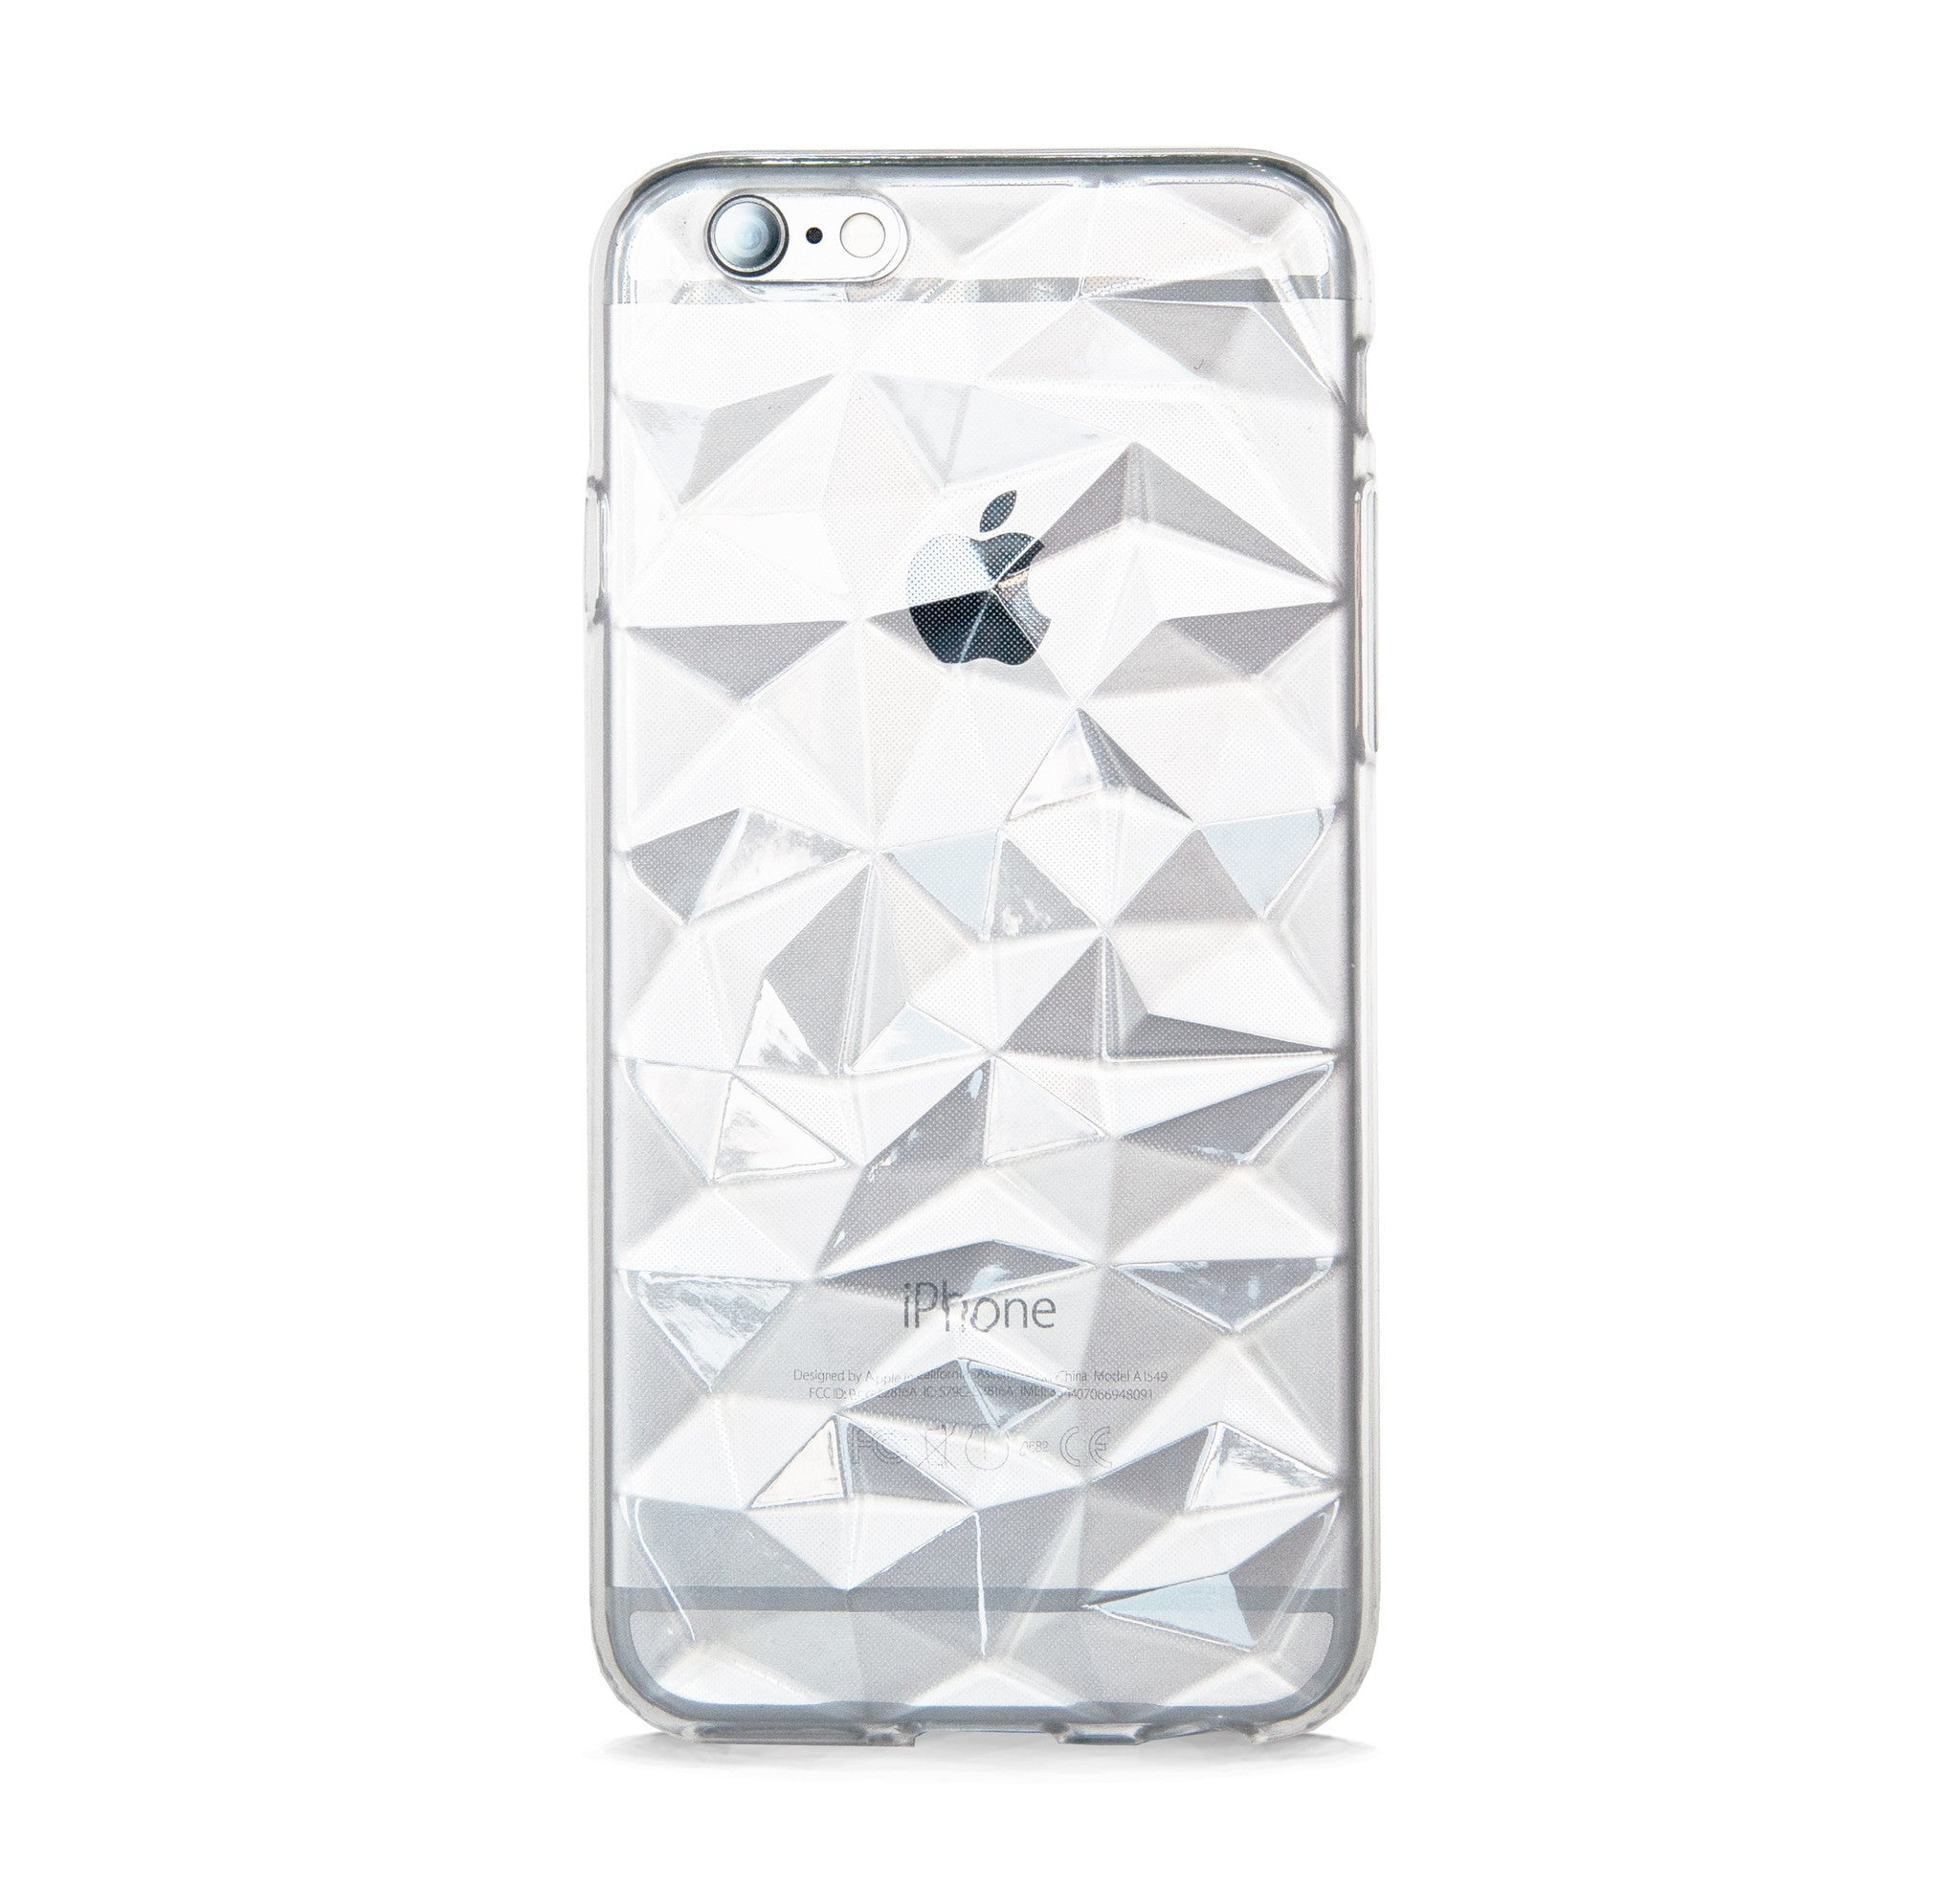 *IPHONE 6/6s MULTI FACETED CLEAR RUBBER CASE